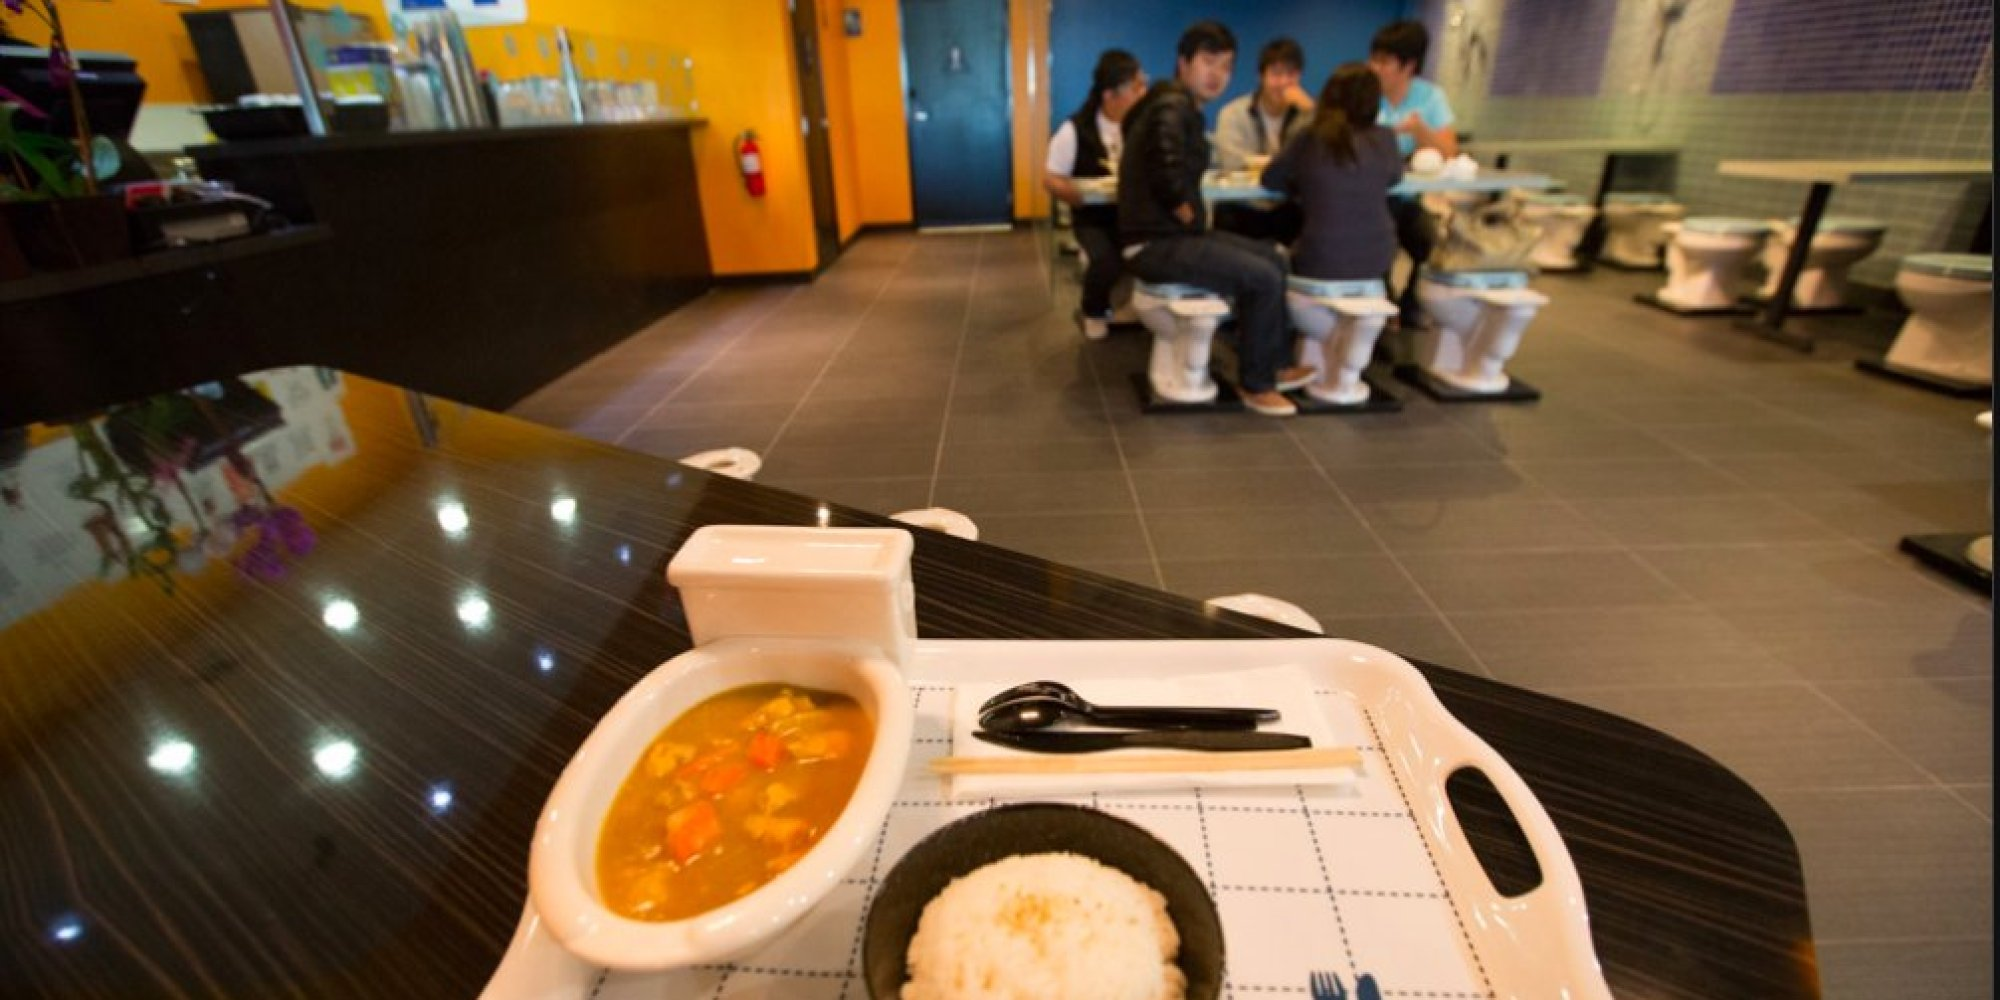 Magic Restroom Cafe Becomes Americas First Toilet Themed Restaurant PHOTOS